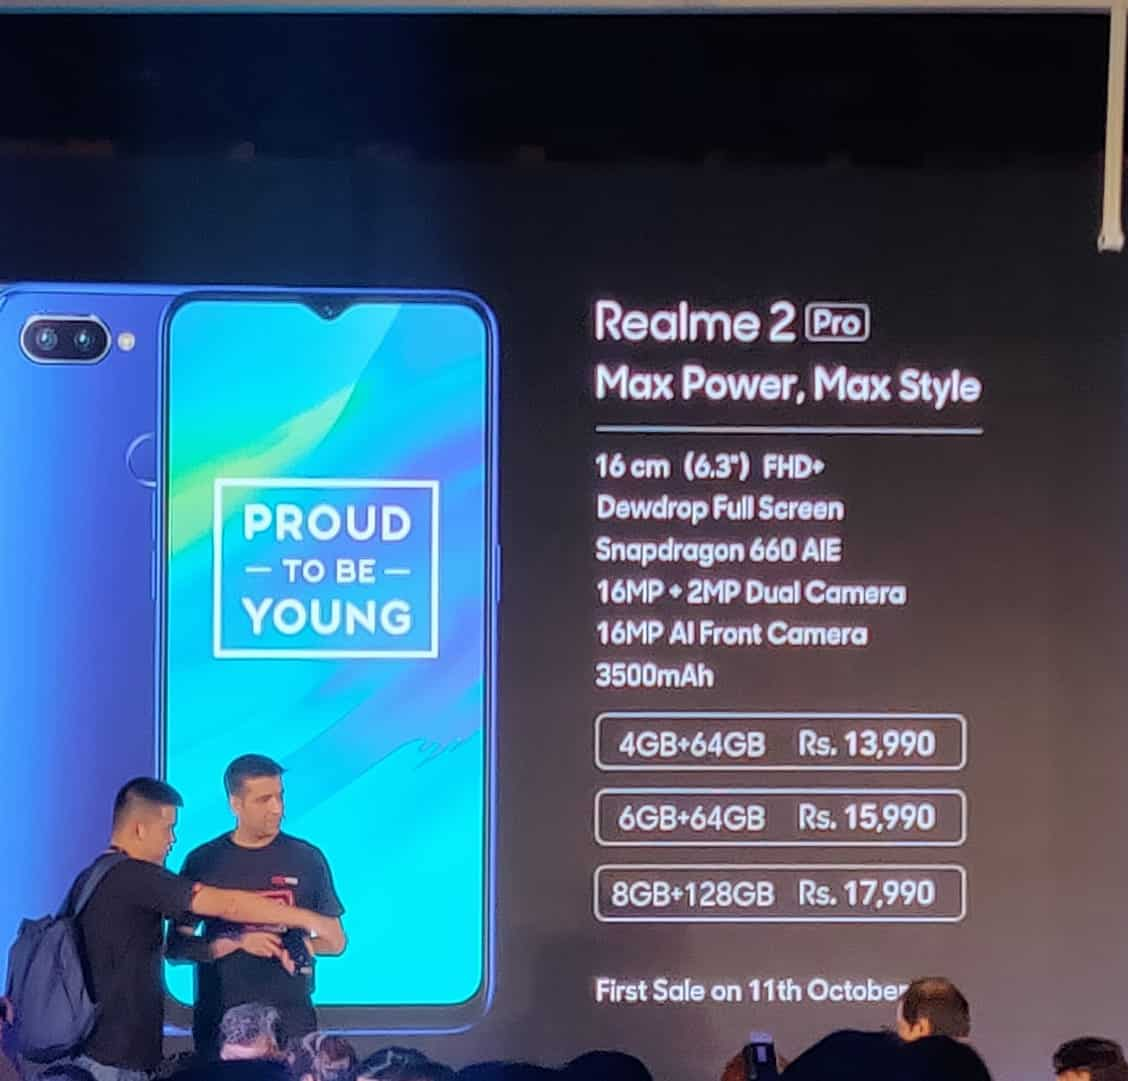 RealMe 2 Pro First Impression - Power packed spec to disrupt the market segment. 5